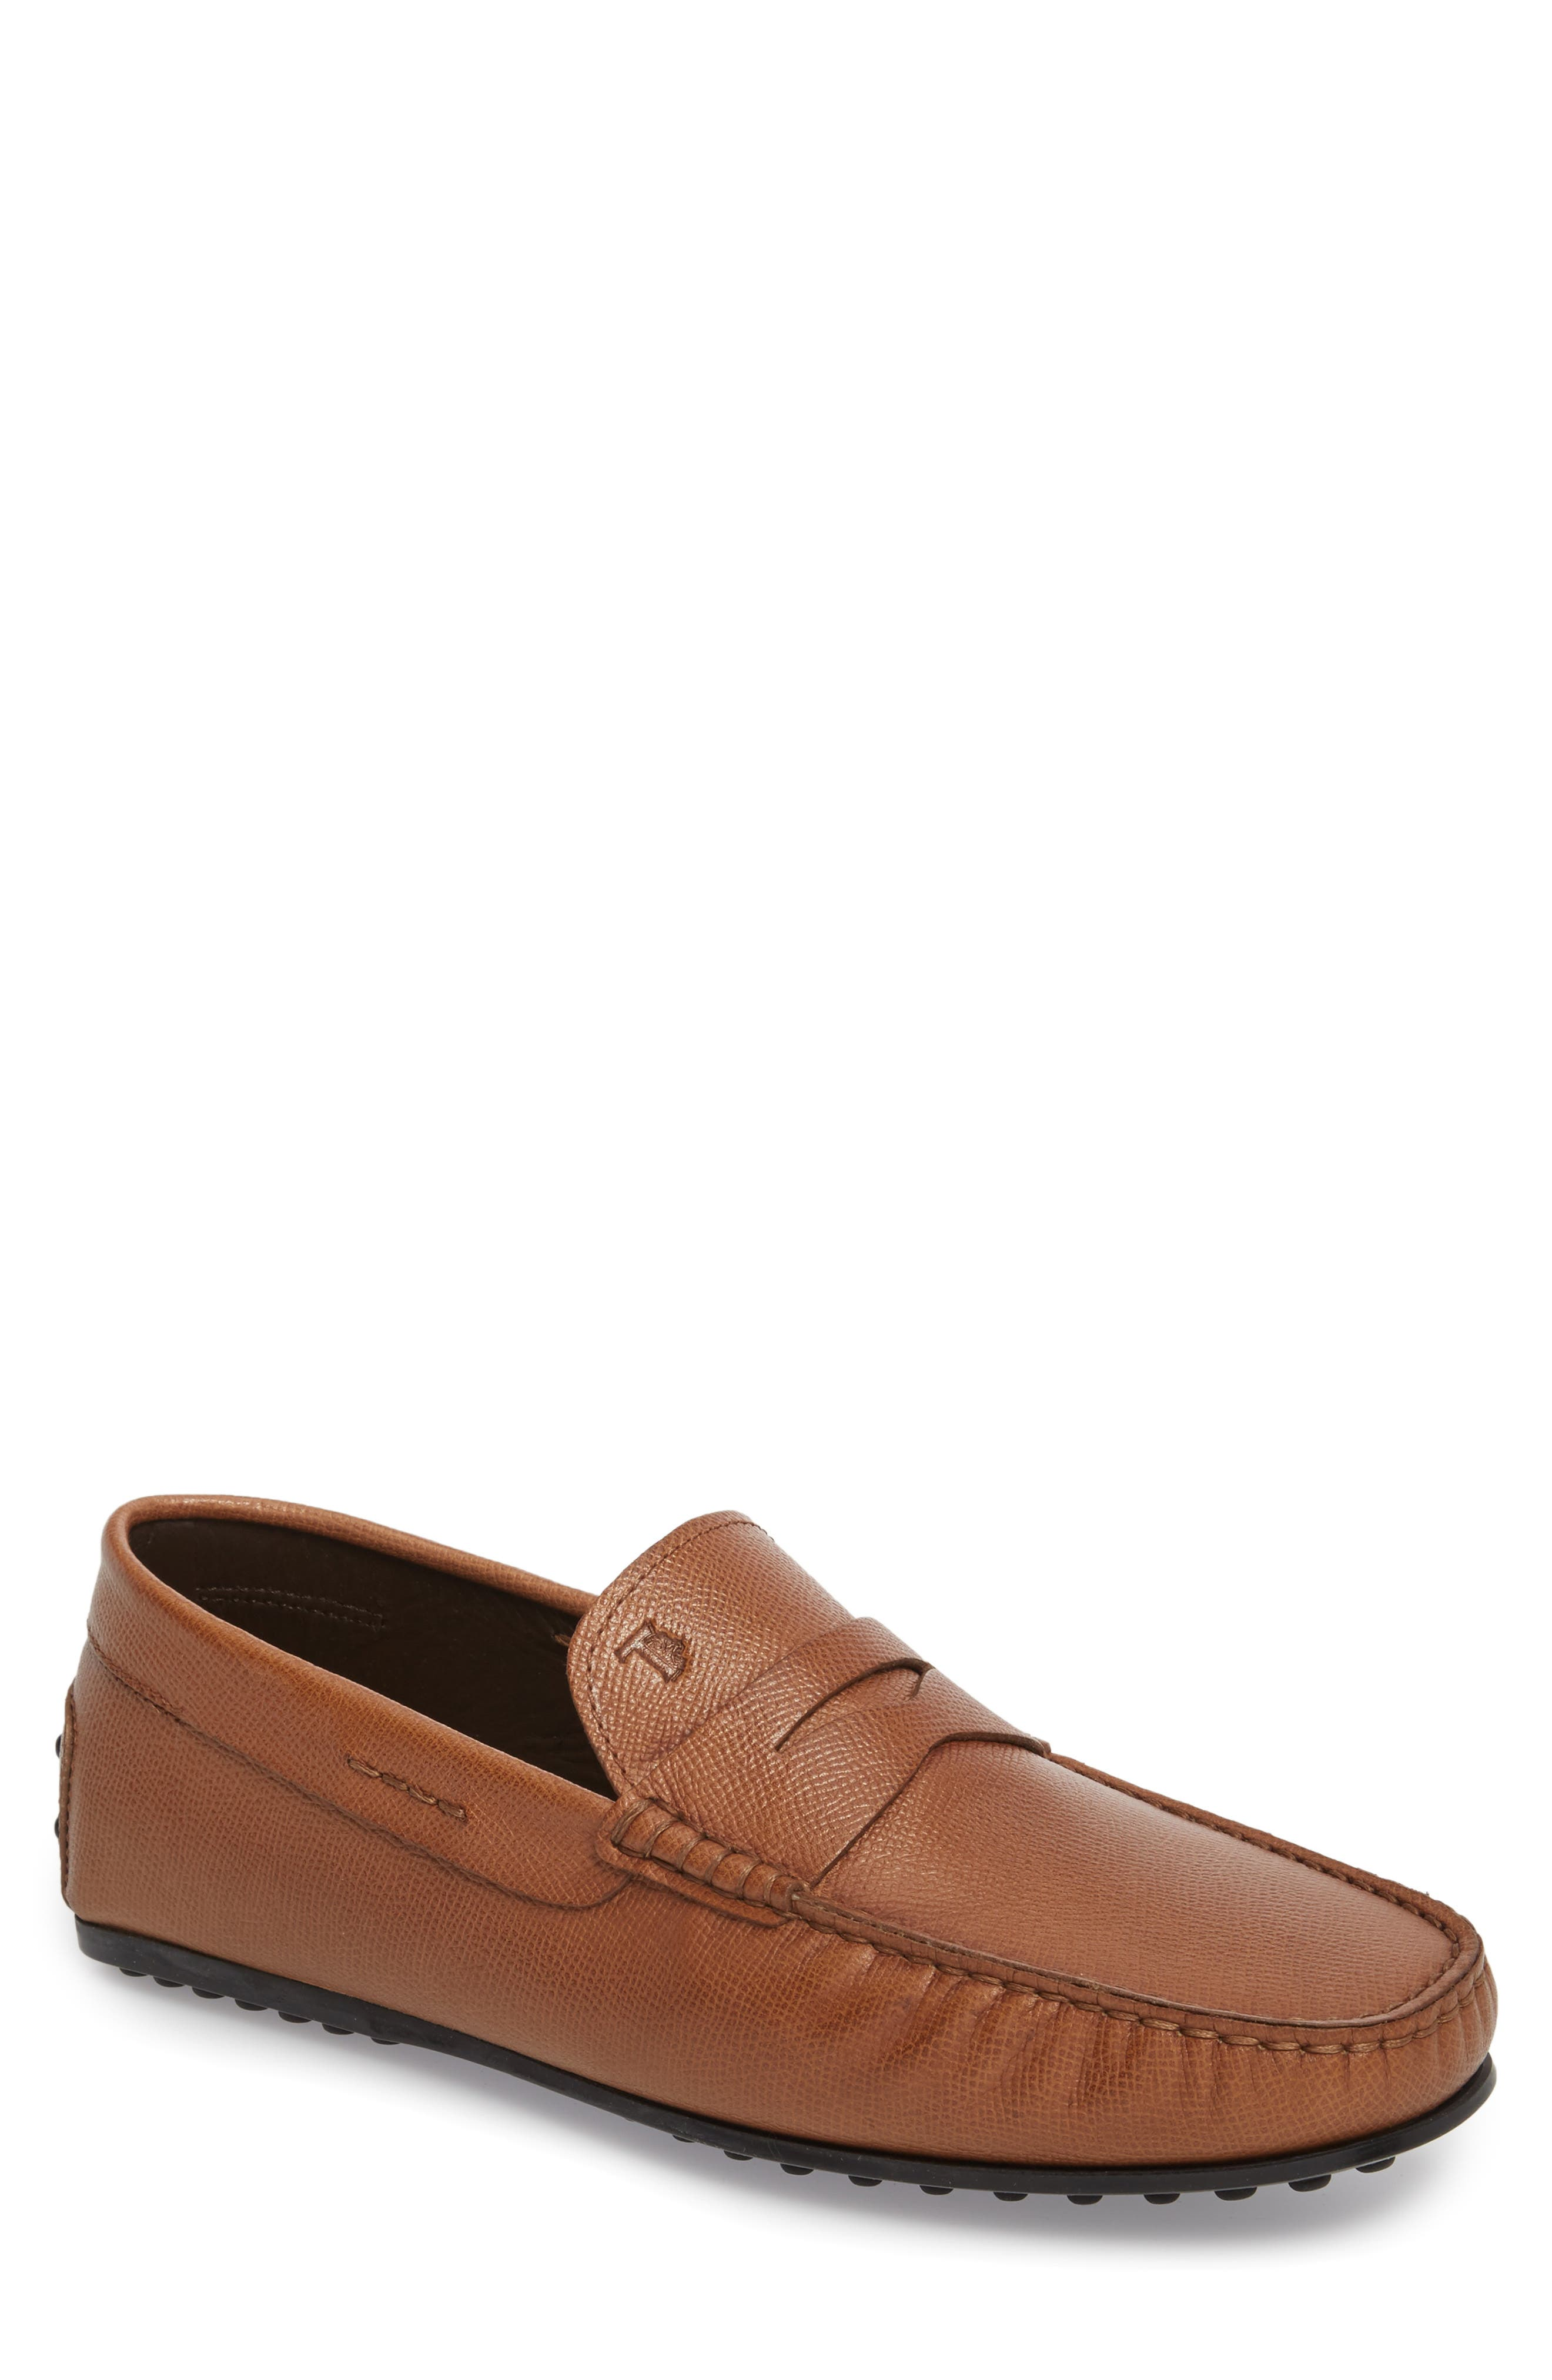 City Driving Shoe,                             Main thumbnail 1, color,                             TAN LEATHER